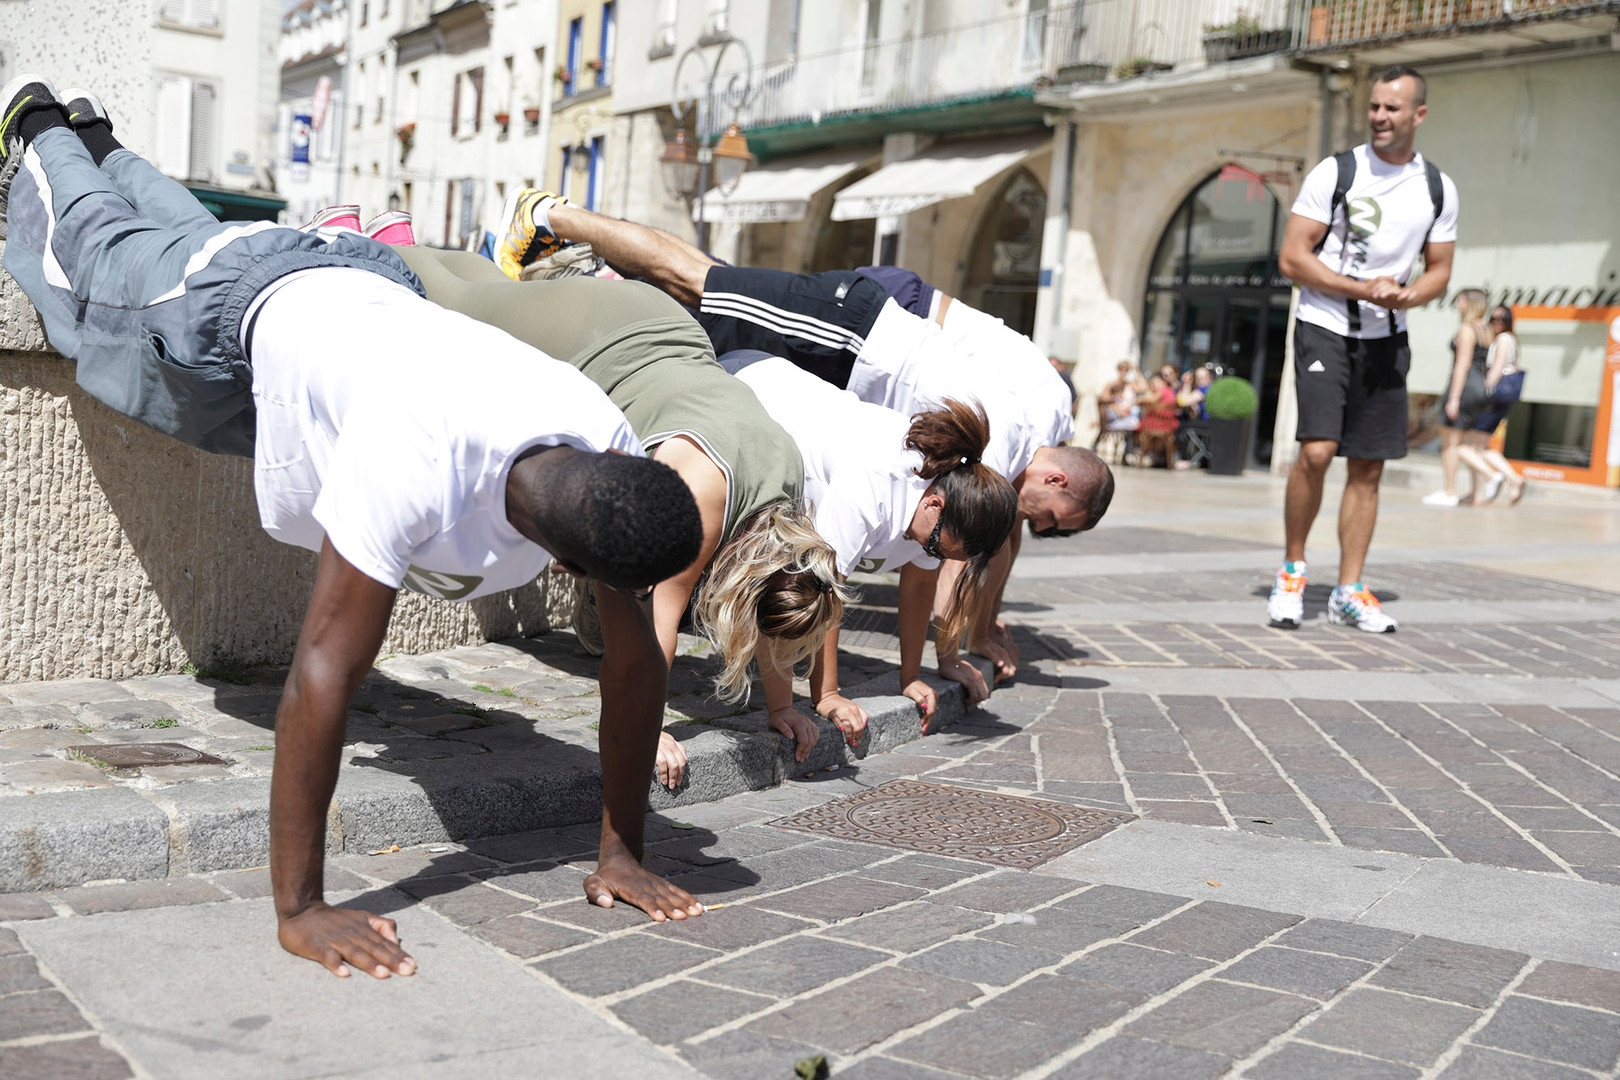 nomad-lagny-street-workout-coach.jpg